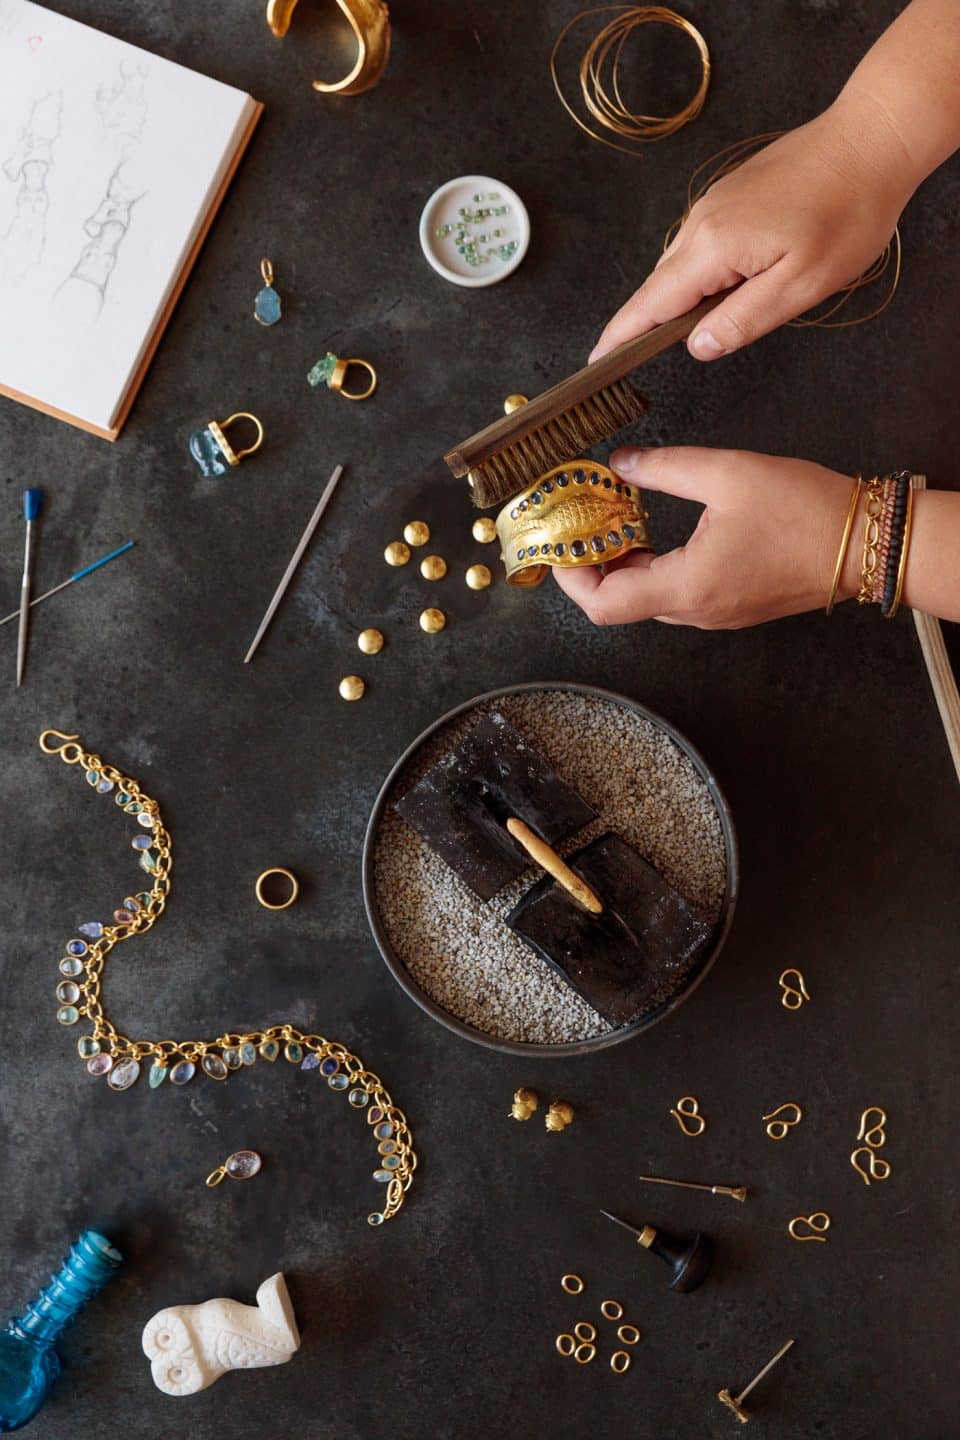 A New Wave Jewelry Genius Who Makes Her Pieces the Old-Fashioned Way